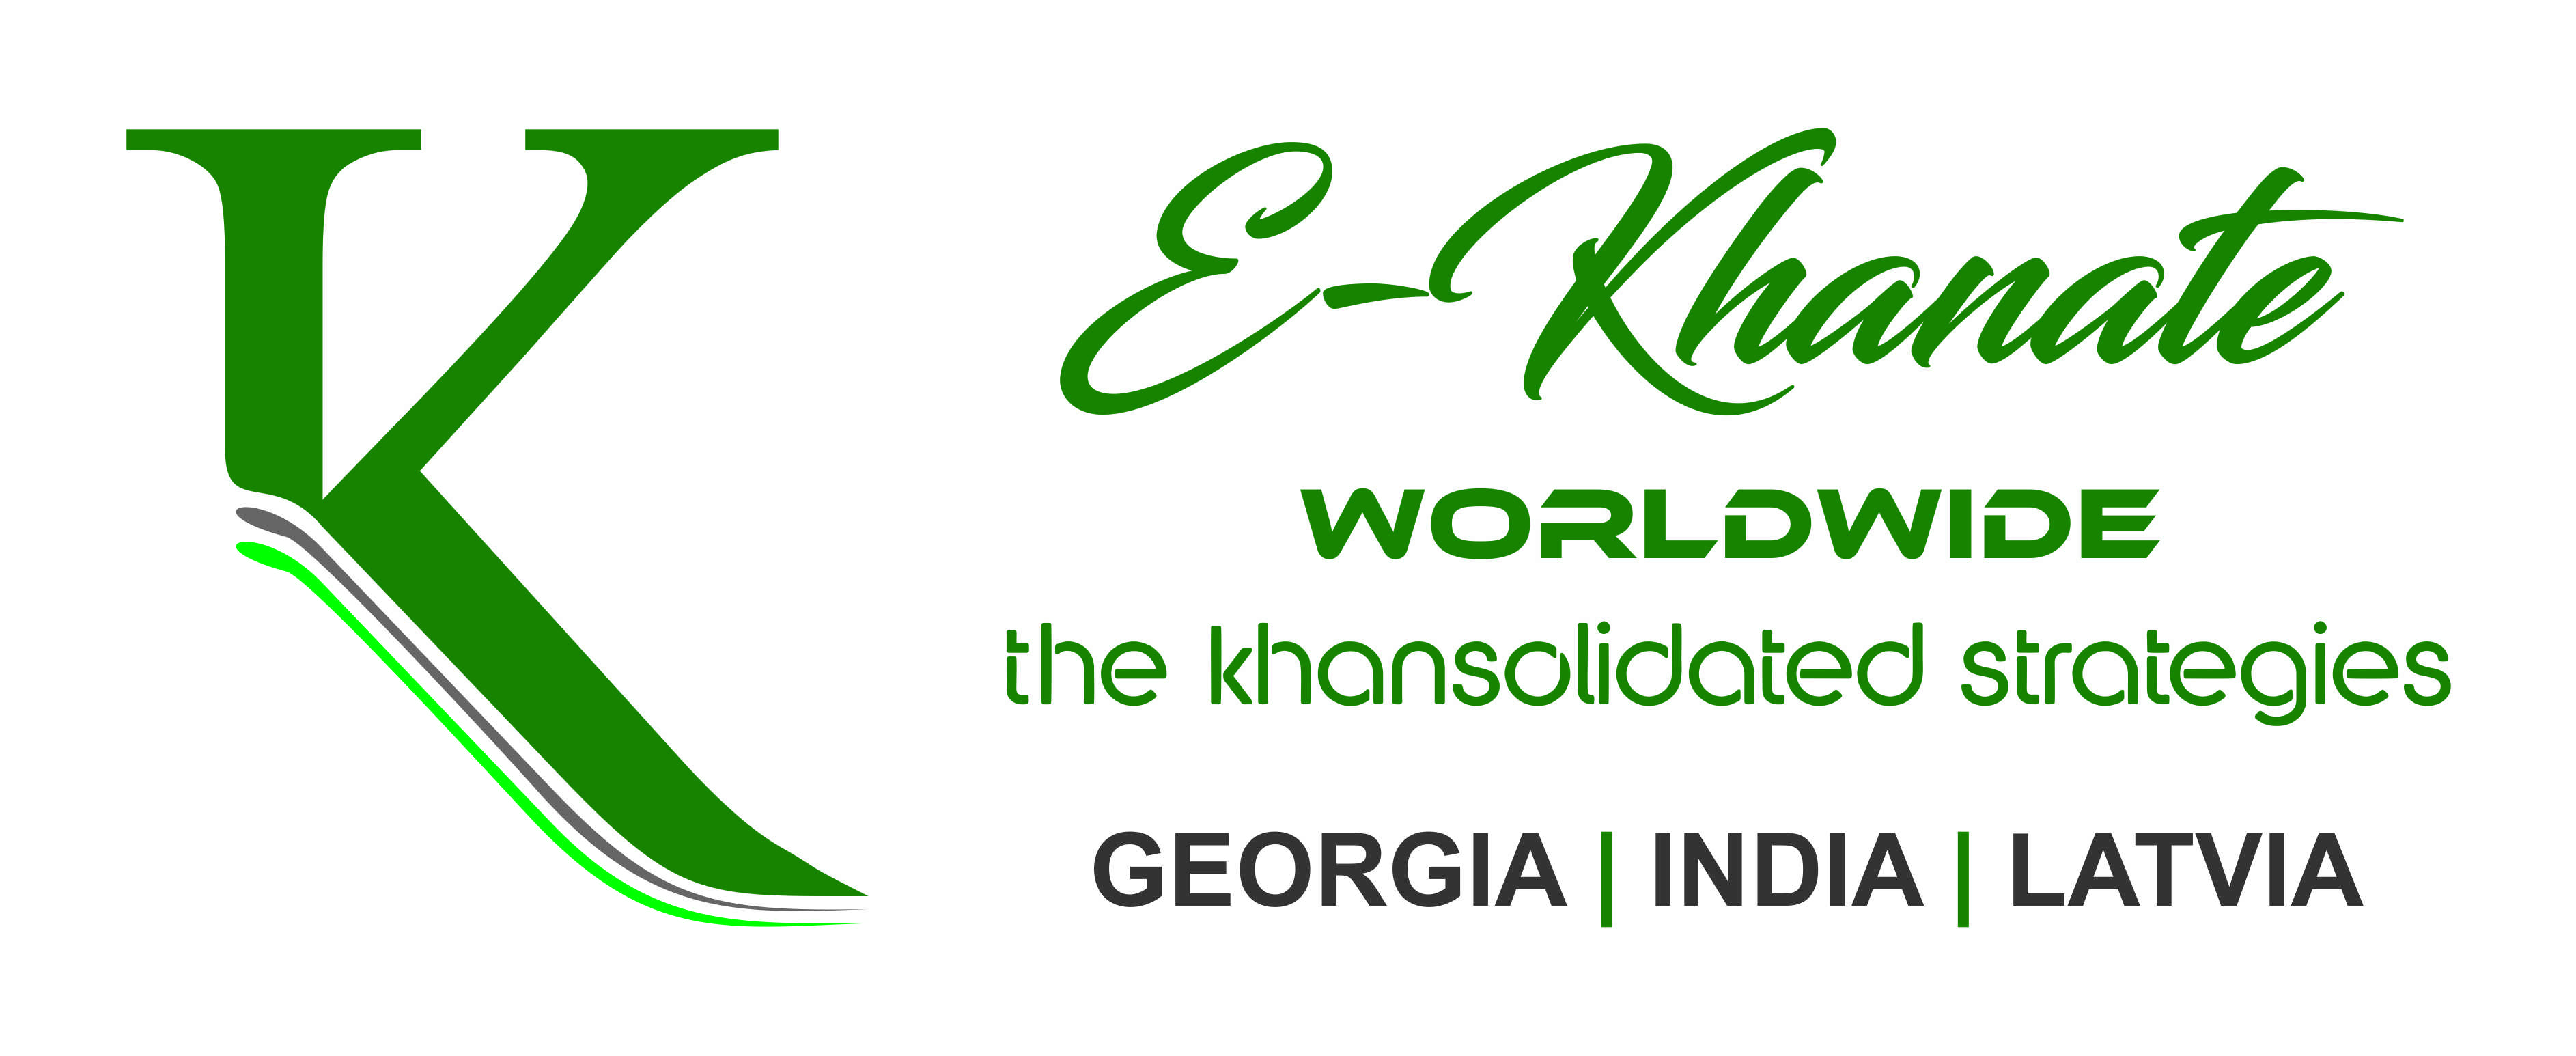 E-Khanate Worldwide